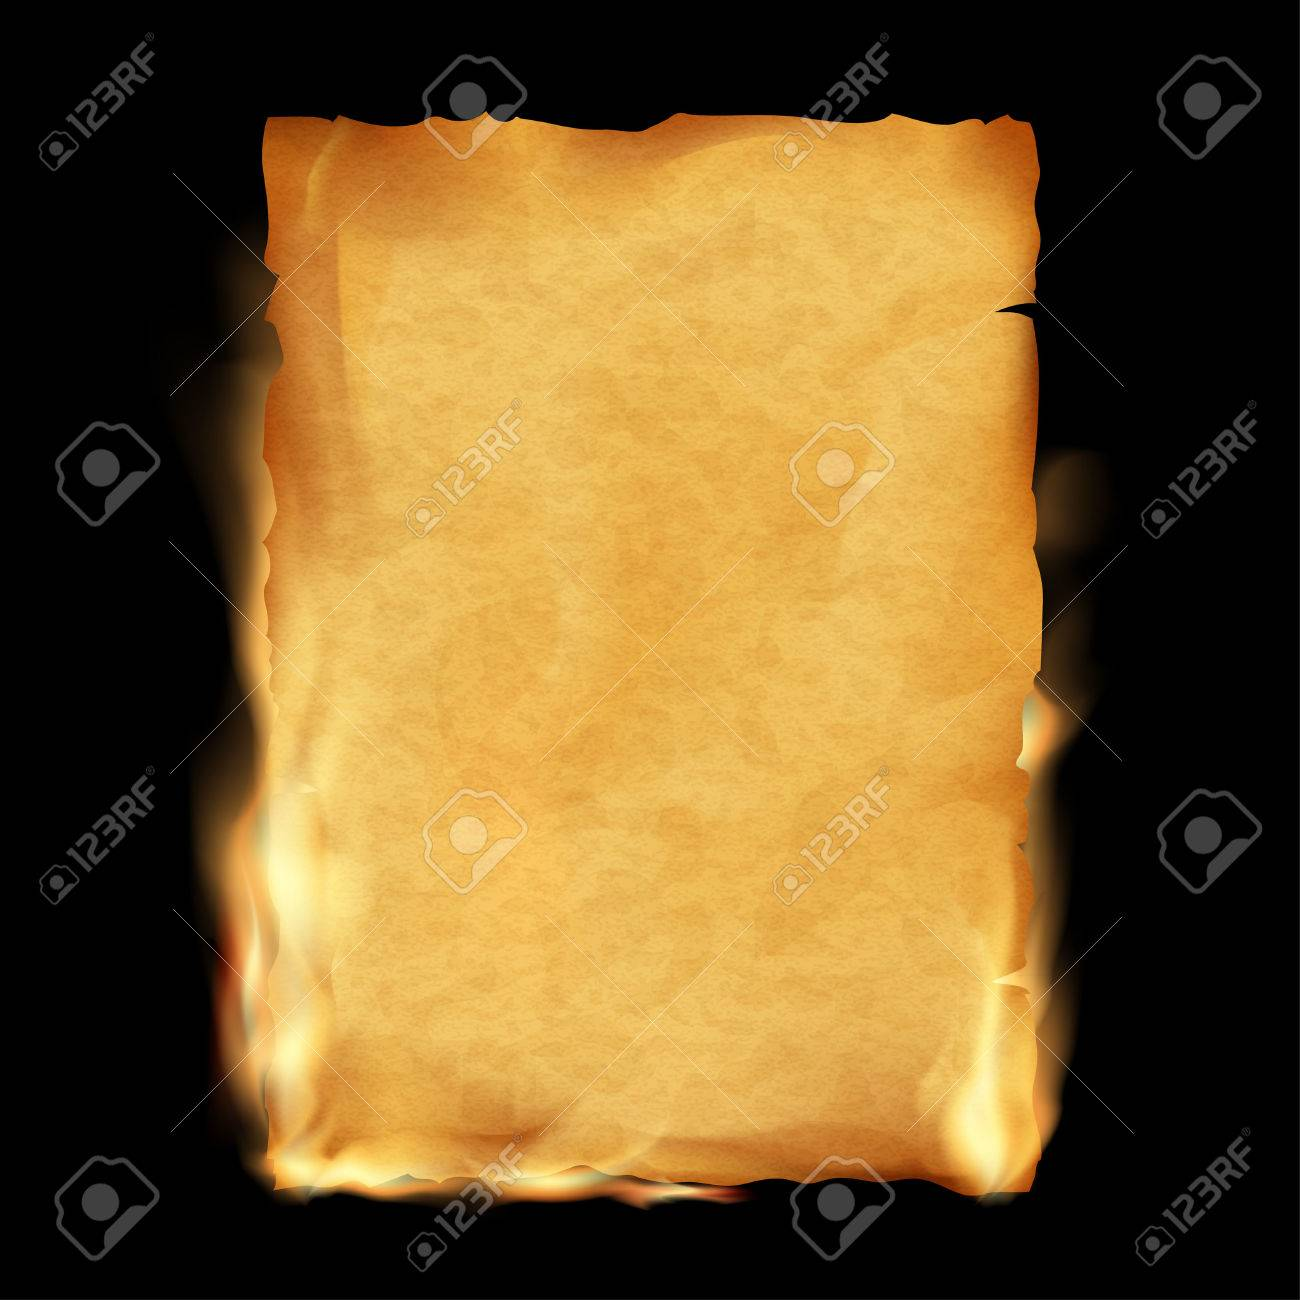 Old parchment is burning. Vintage grunge texture. Stock vector illustration. - 55927827